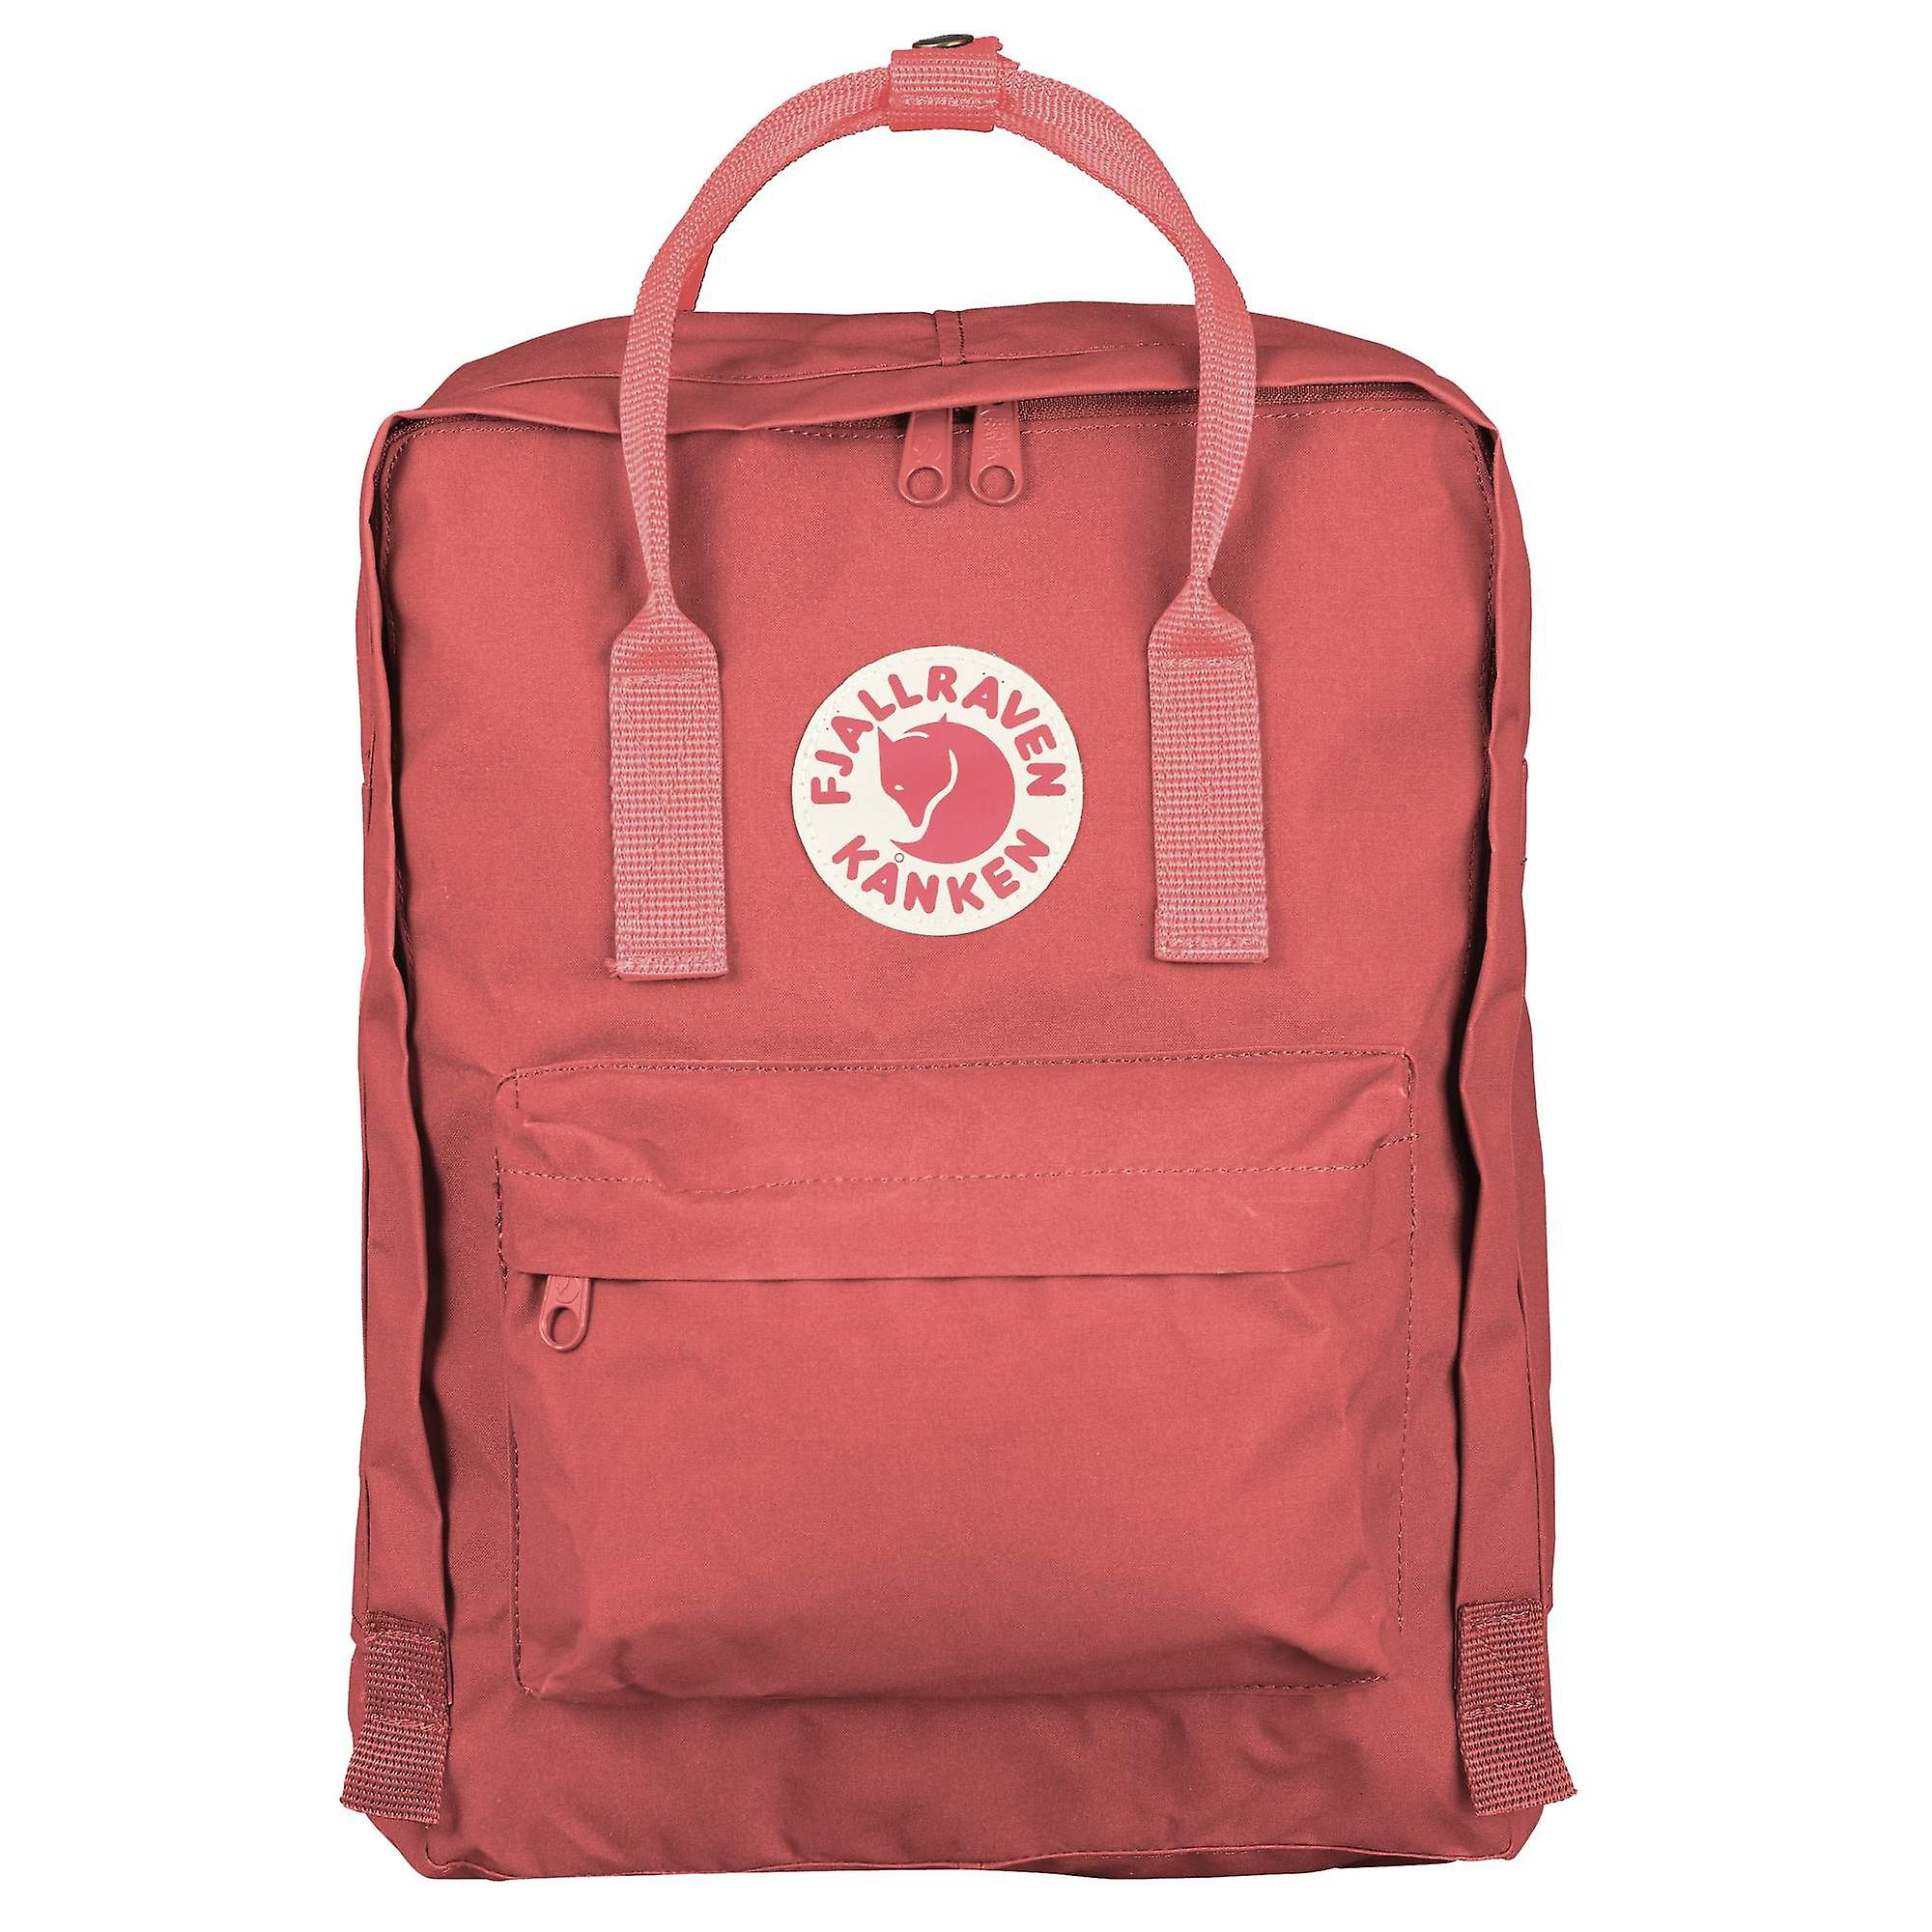 53f743246609 Fjallraven - Kanken Classic Backpack for Everyday - Peach Pink | Fruugo